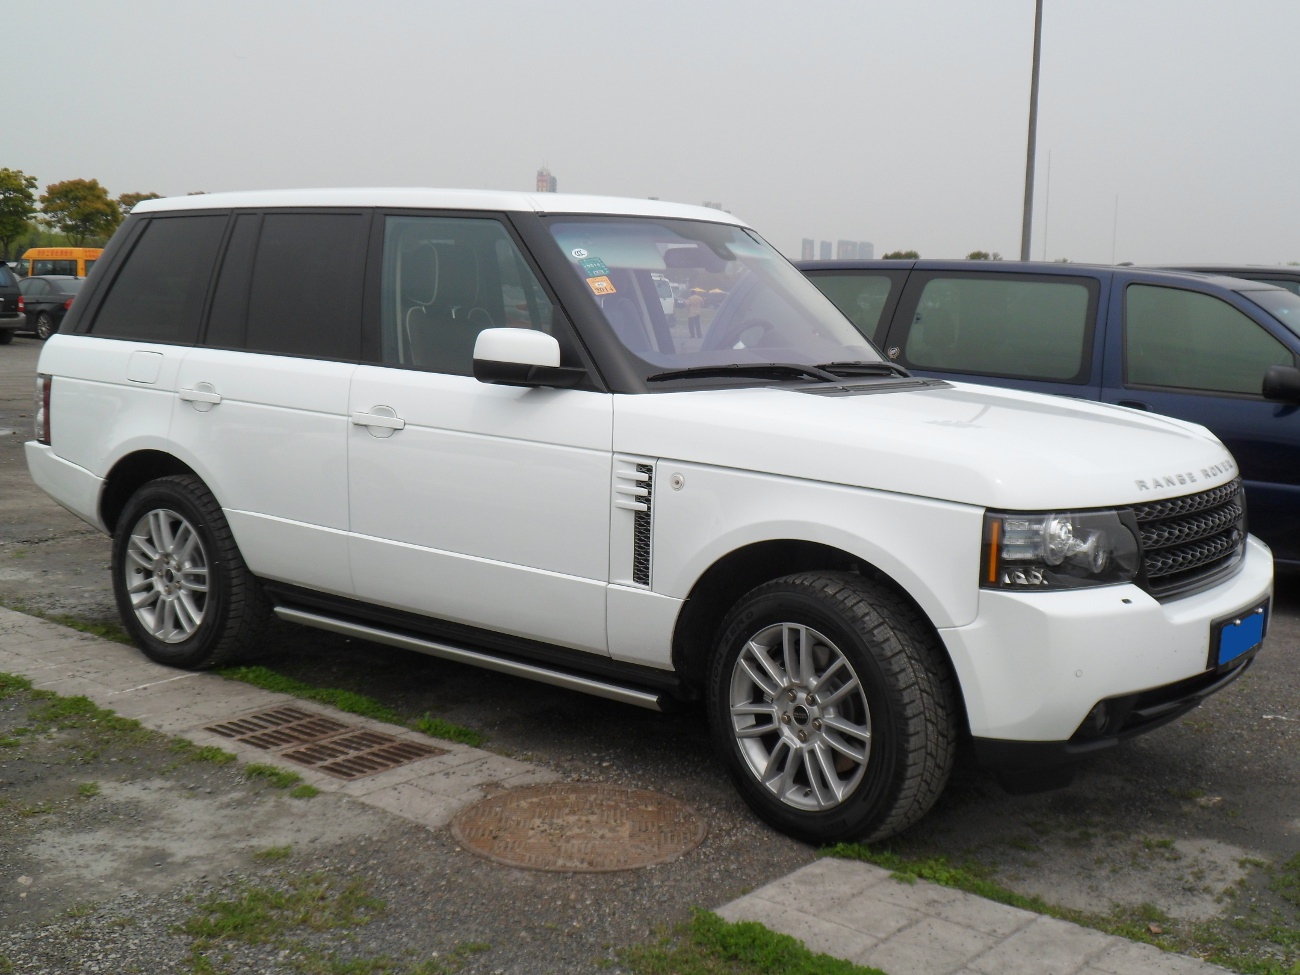 file land rover range rover l322 facelift china 2012 04 wikimedia commons. Black Bedroom Furniture Sets. Home Design Ideas